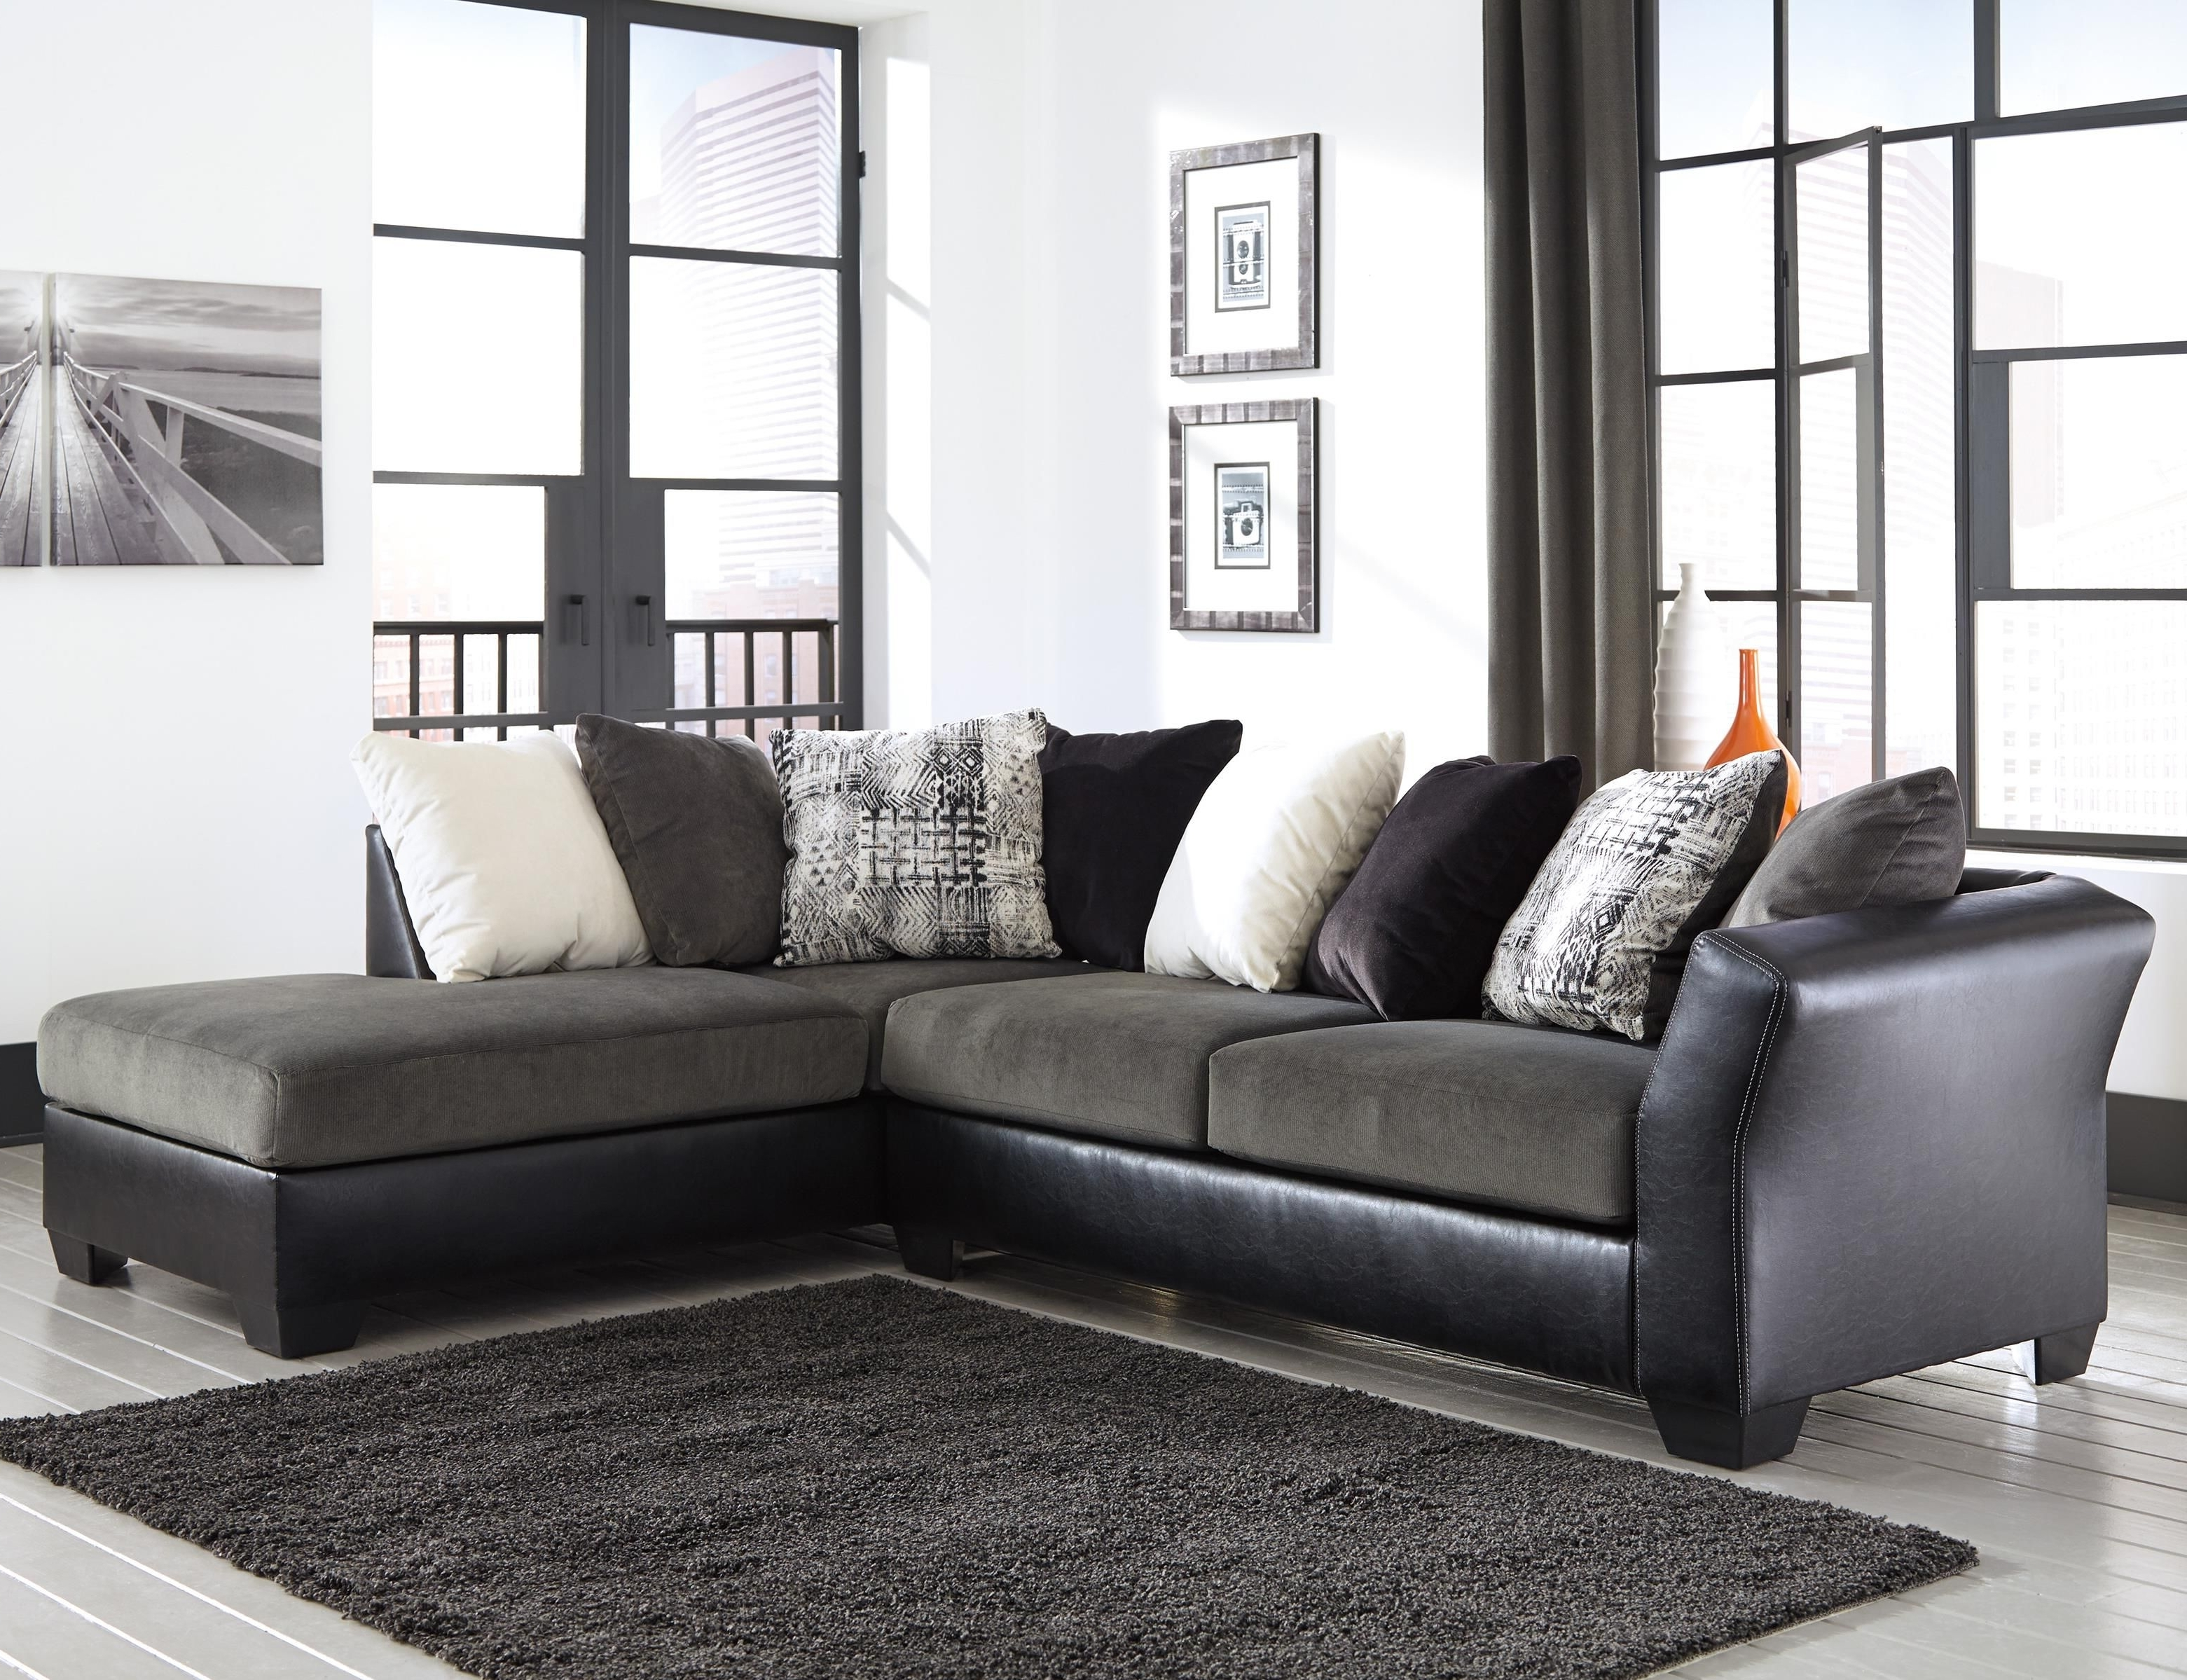 Well Known Murfreesboro Tn Sectional Sofas With Armant 2 Piece Sectional With Right Chaisesignature Design (View 15 of 15)